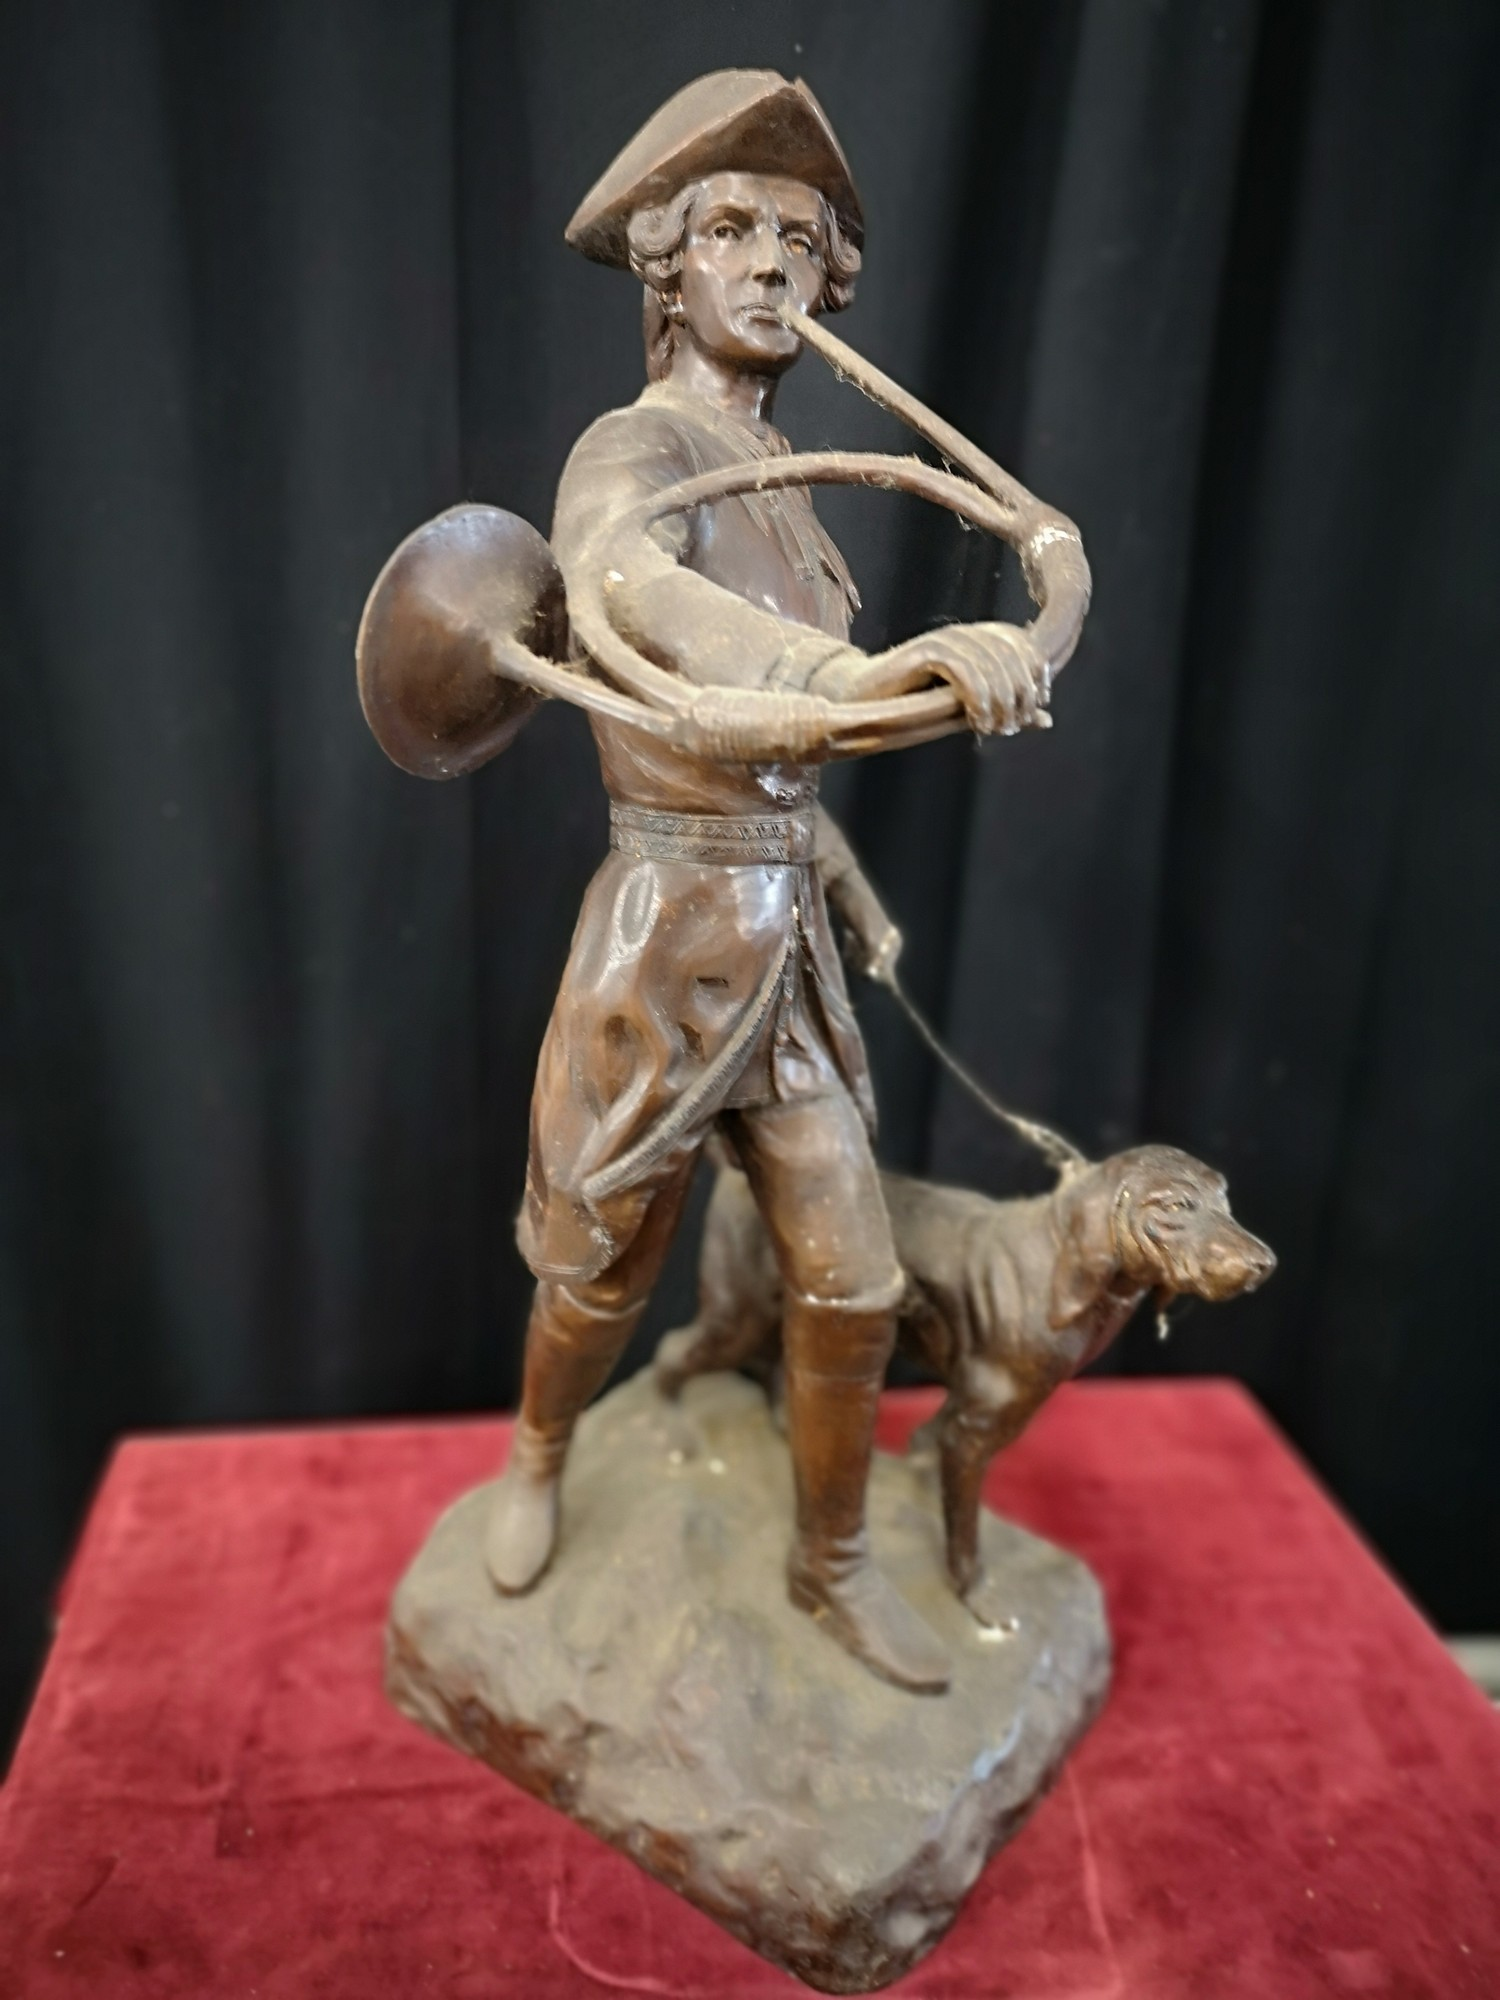 Large heavy 1900s Bronze study of soldier dog Figure 23.5 inches in height. Weighs 14kg. - Image 5 of 5